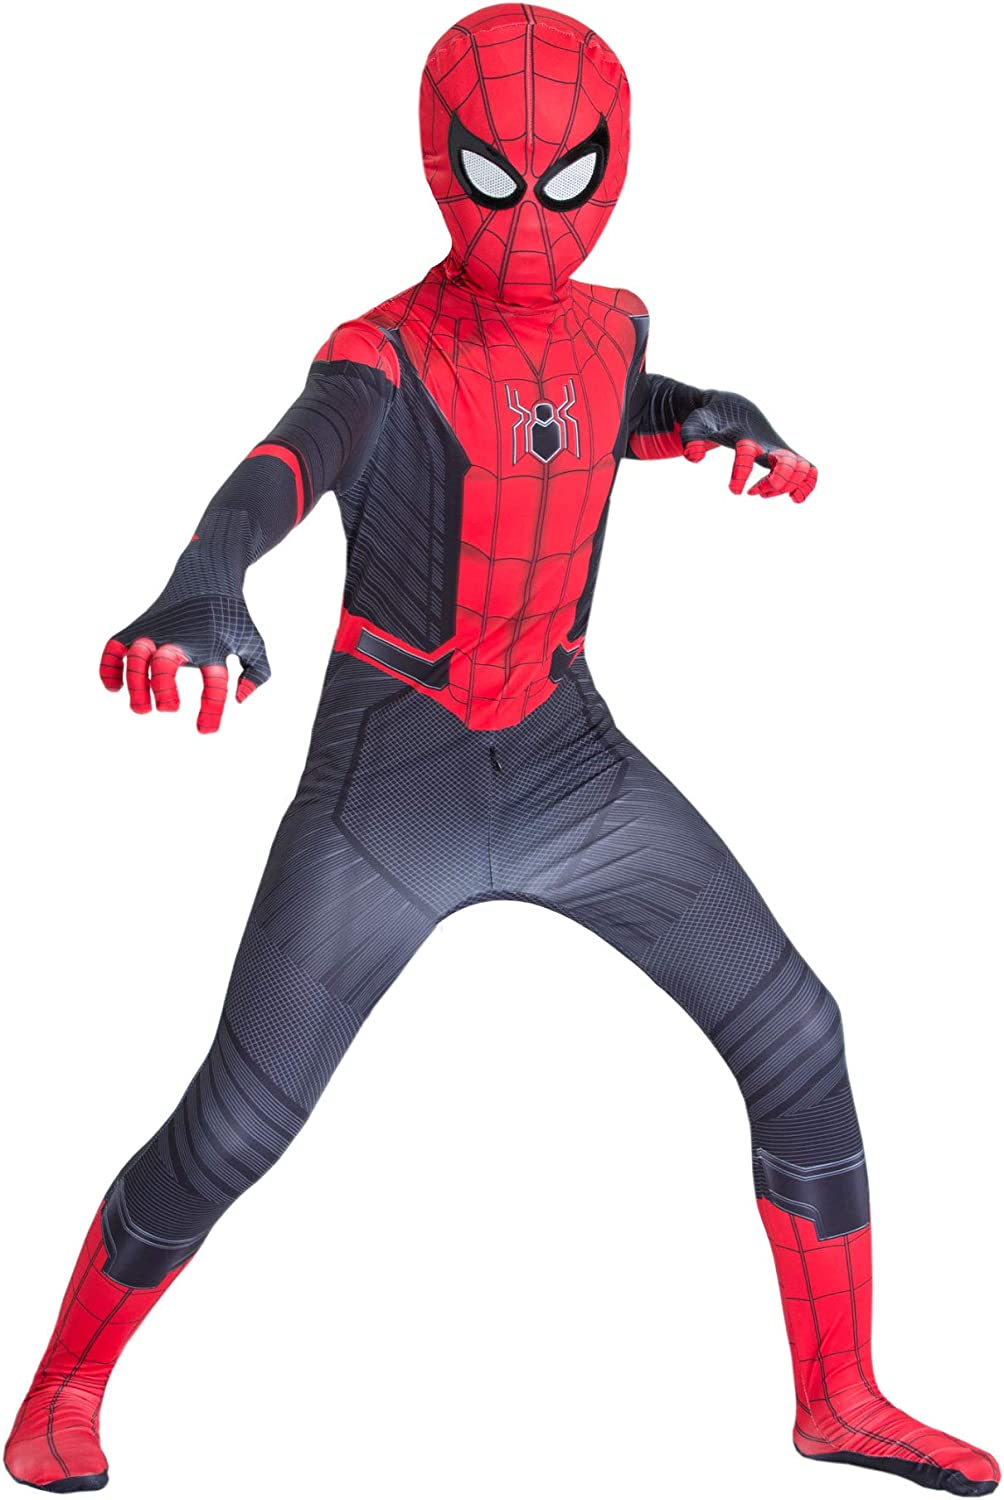 Superhero Costume for Kids,Far from Home Cosplay Costumes for Boys